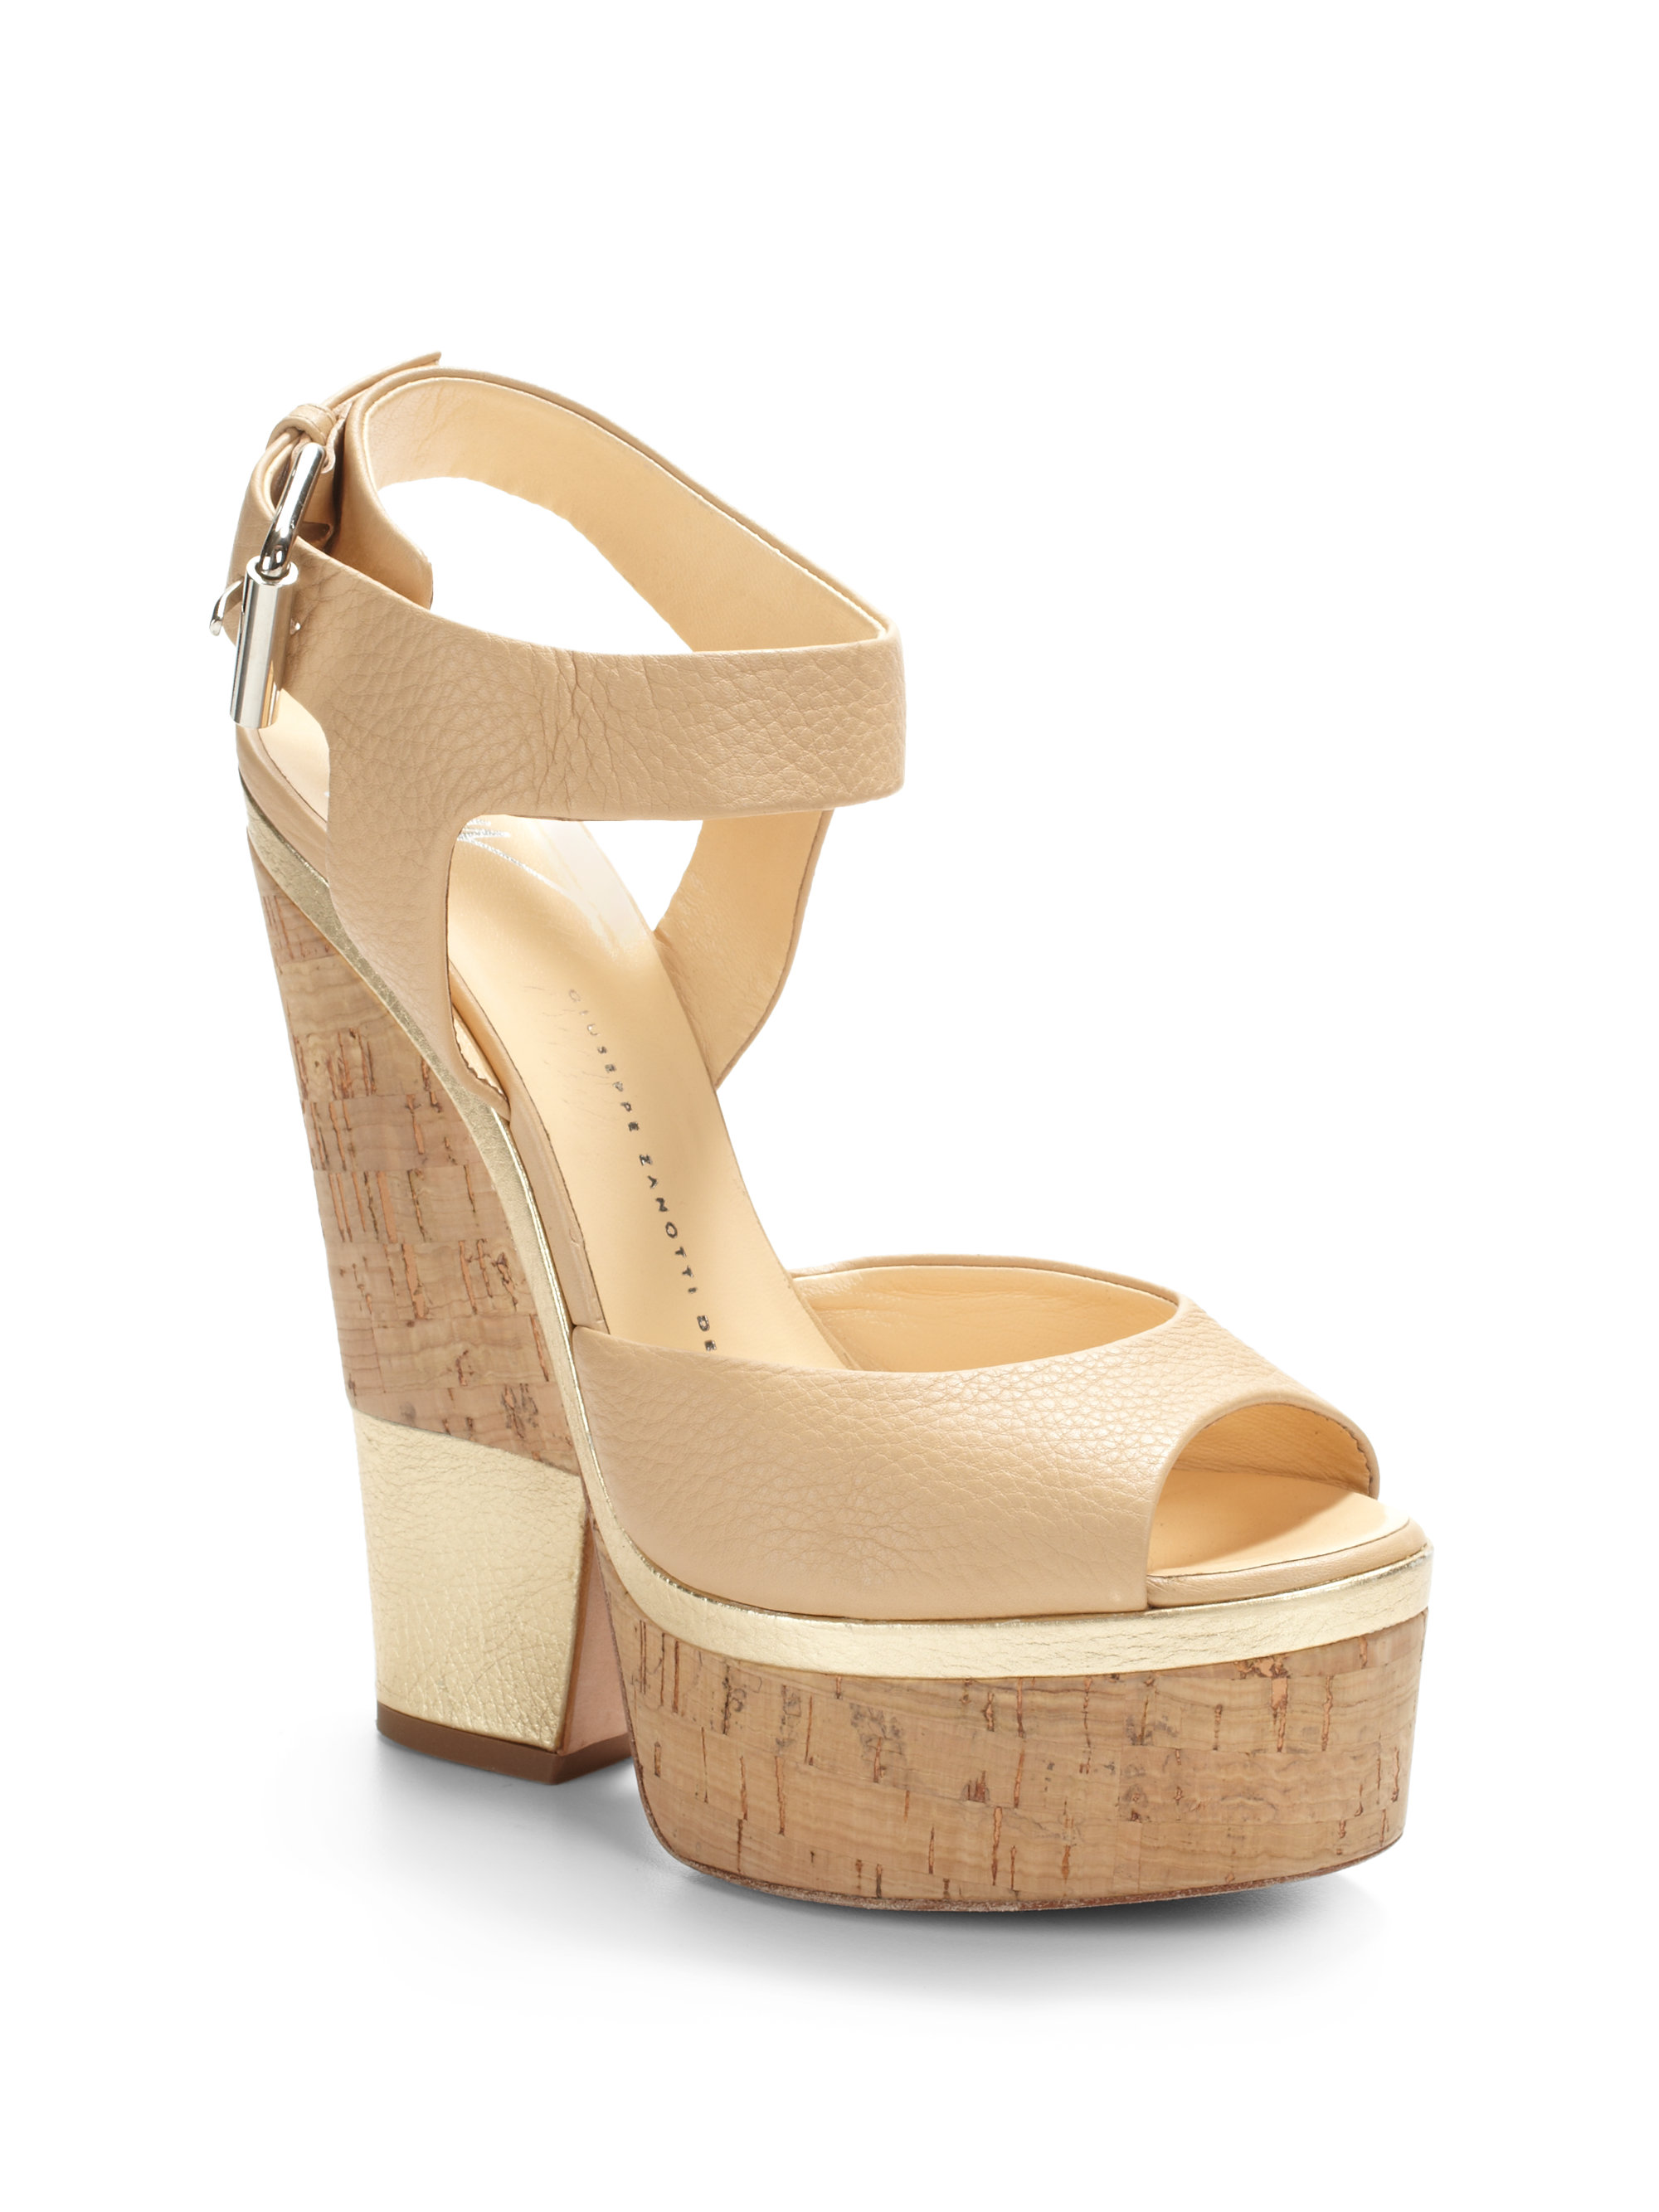 Giuseppe Zanotti Leather Wedged Sandals buy cheap price sale best place FwnC64IR